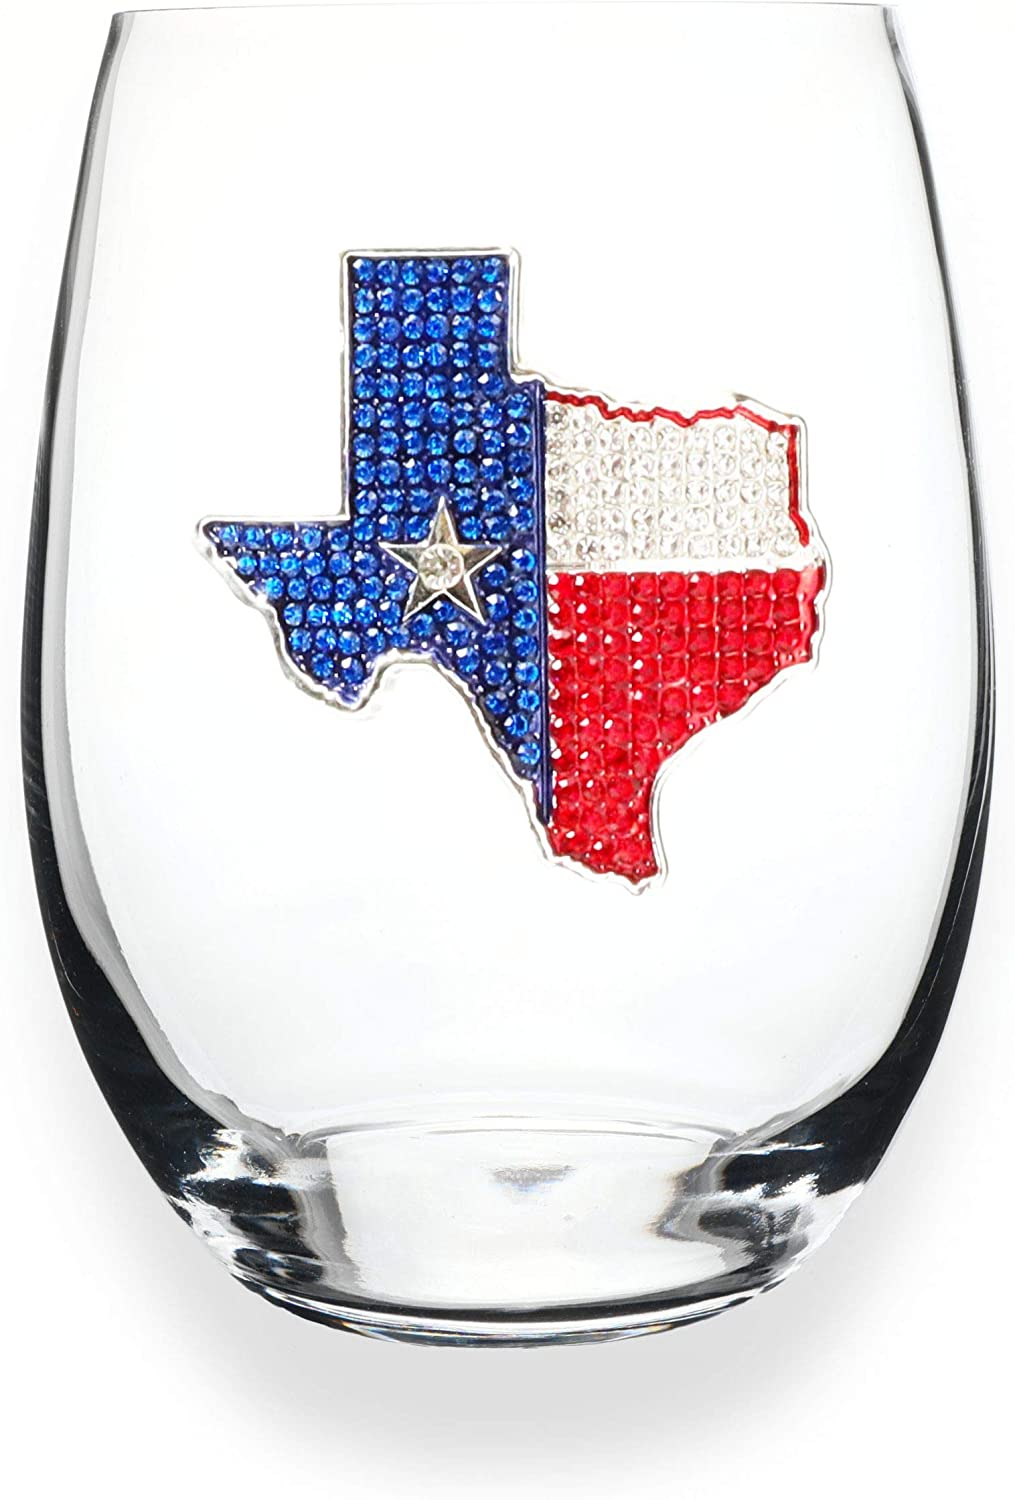 THE QUEENS' JEWELS Texas State Jeweled f Unique - Max 44% OFF Gift Glassware Special price for a limited time